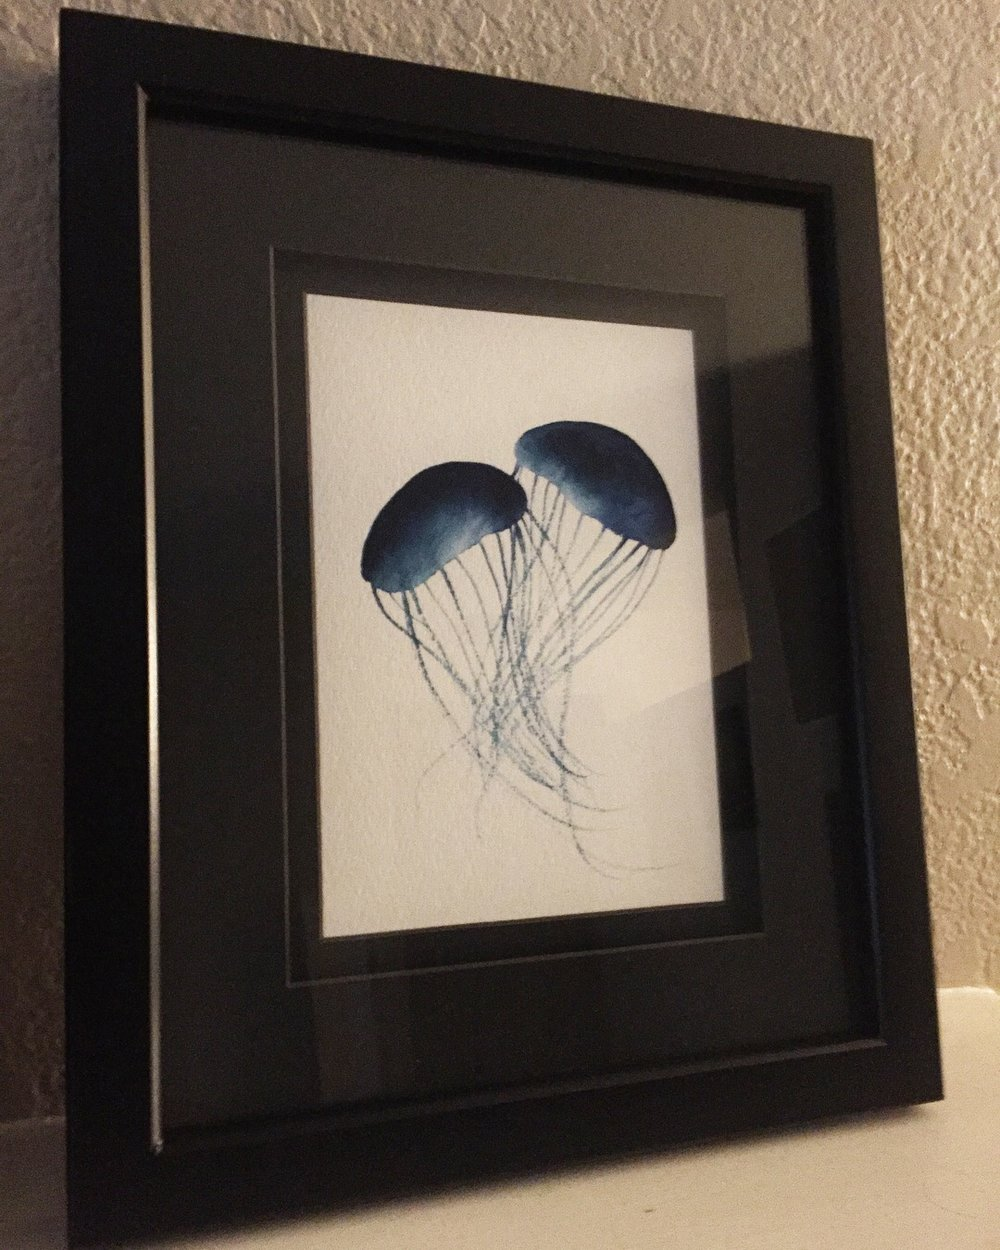 "Framed jellyfish 5 x7"" original watercolor is now available for purchase in Kanzaki Shop."